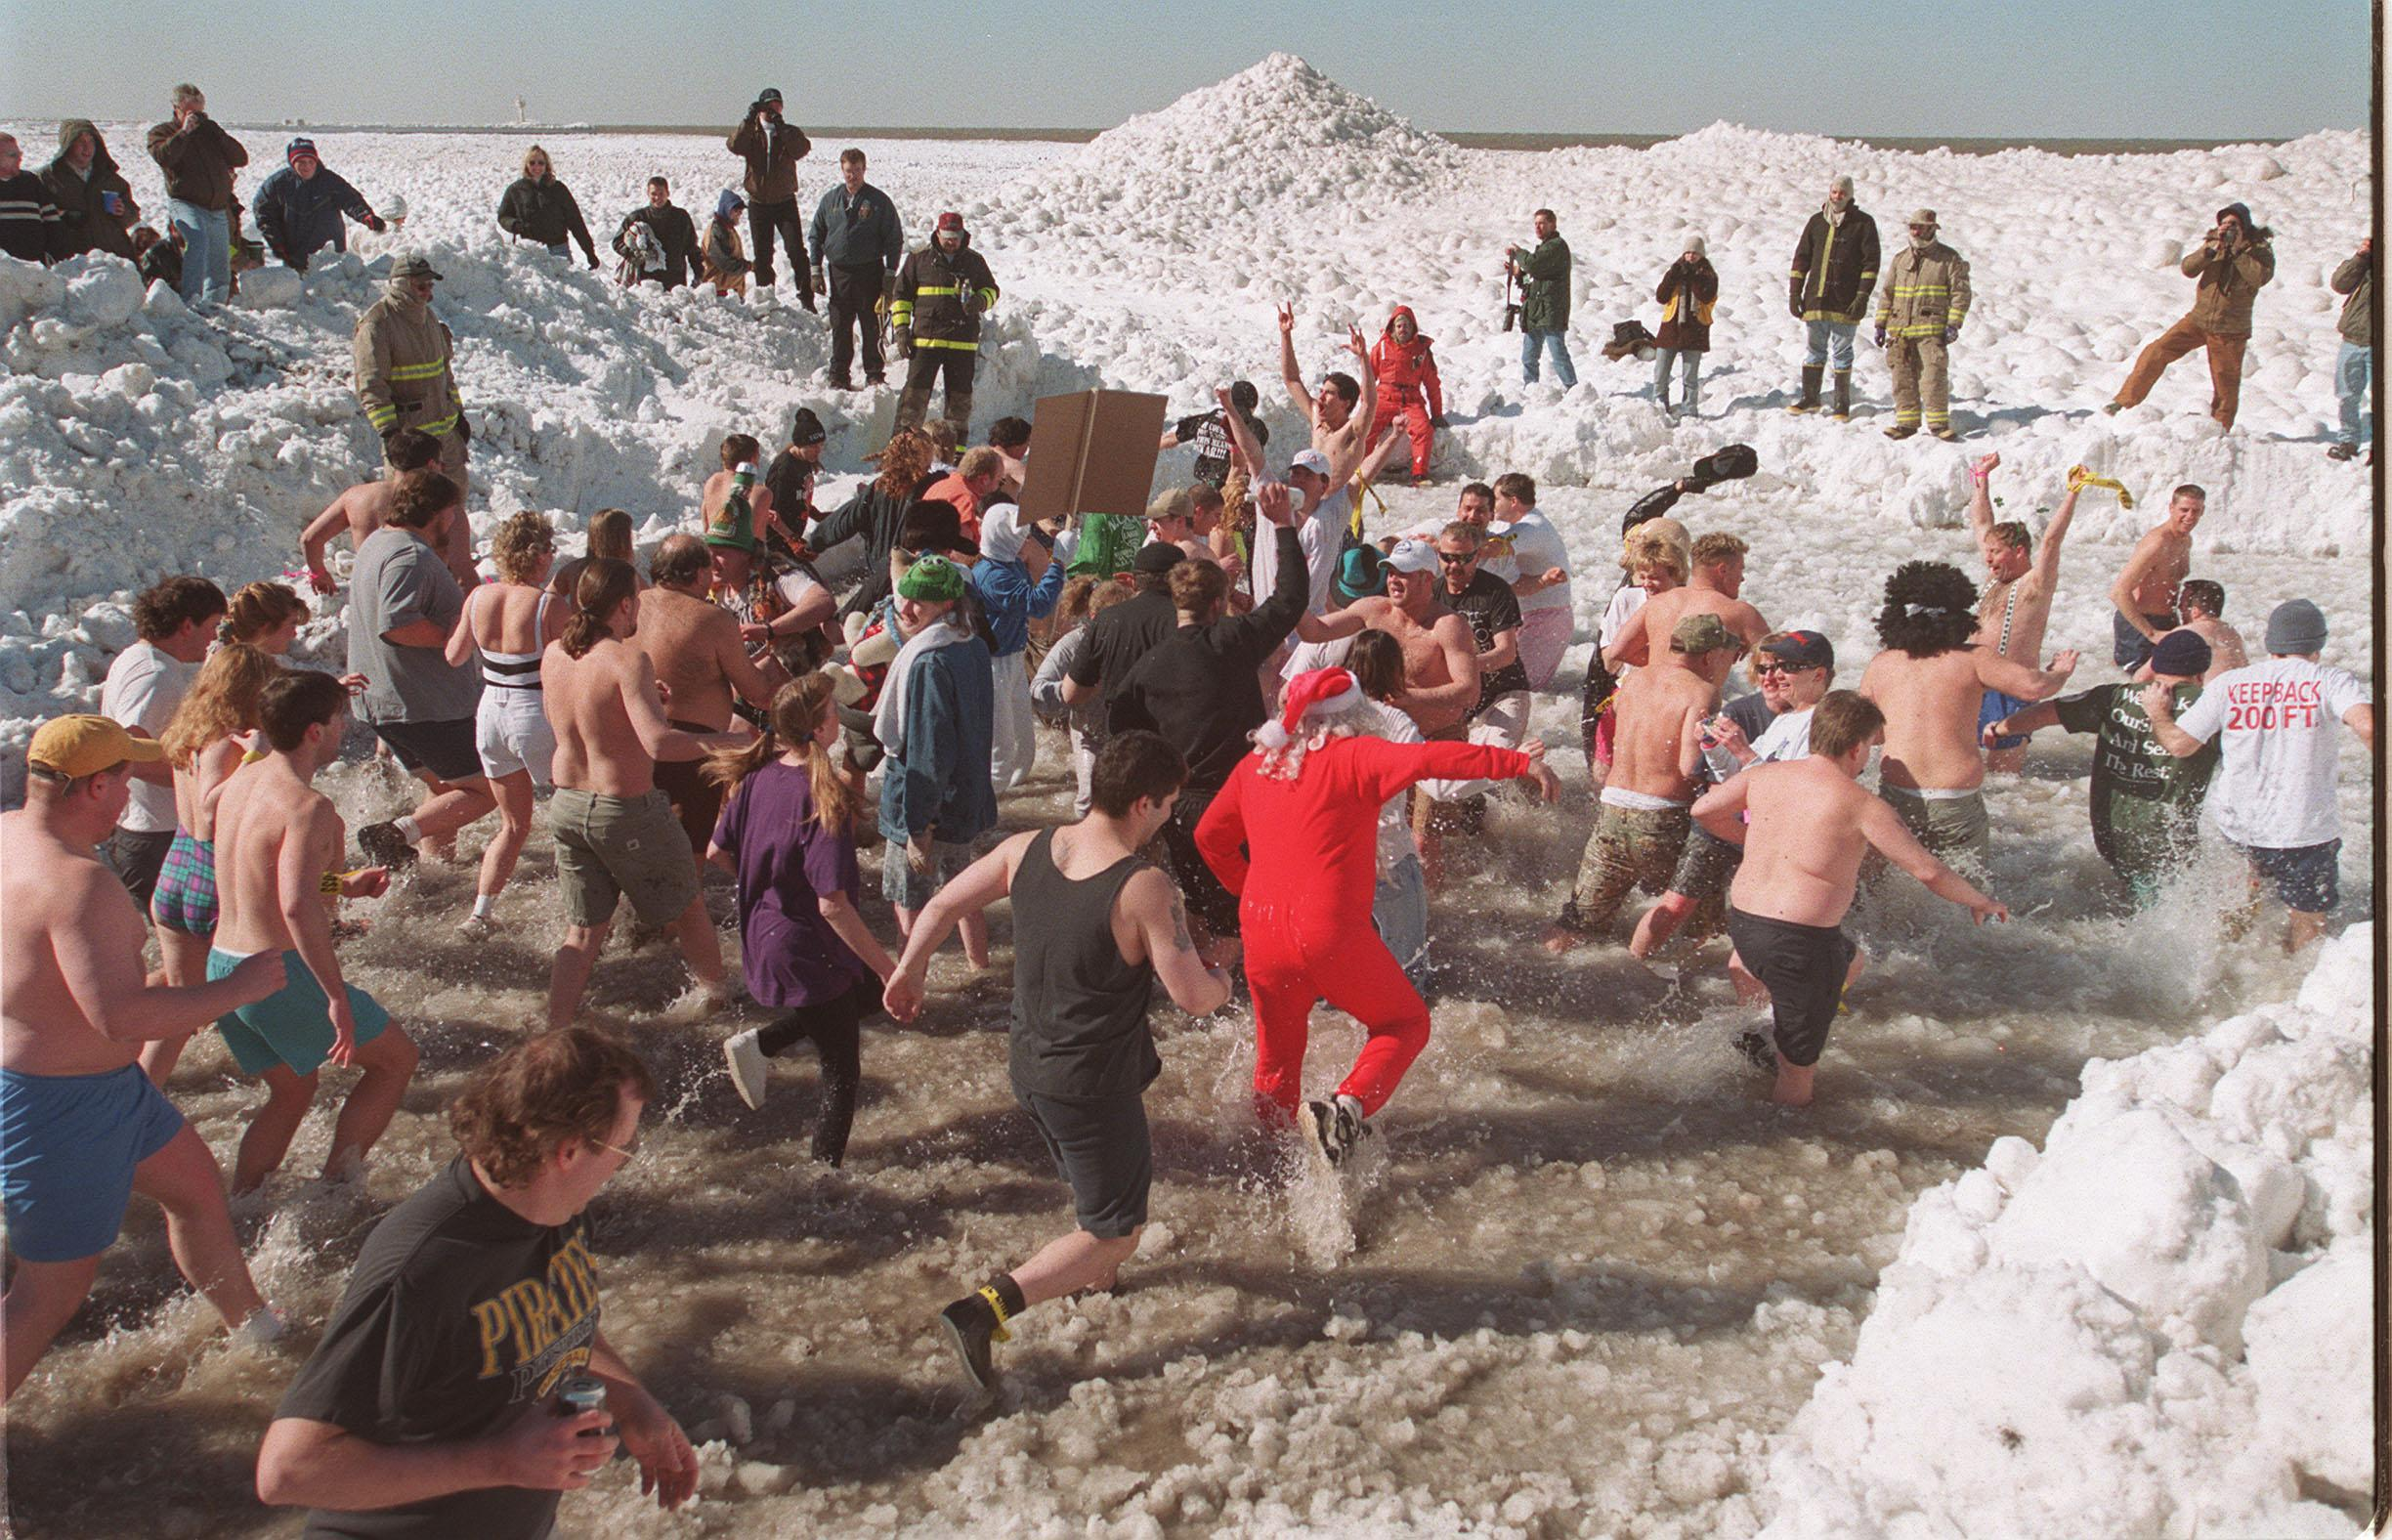 The Polar Bear Swim for Sight hits the water at 2 p.m. Sunday in Olcott, right after the Polar Bear Queen is named. (Mark Mulville/Buffalo News file photo)